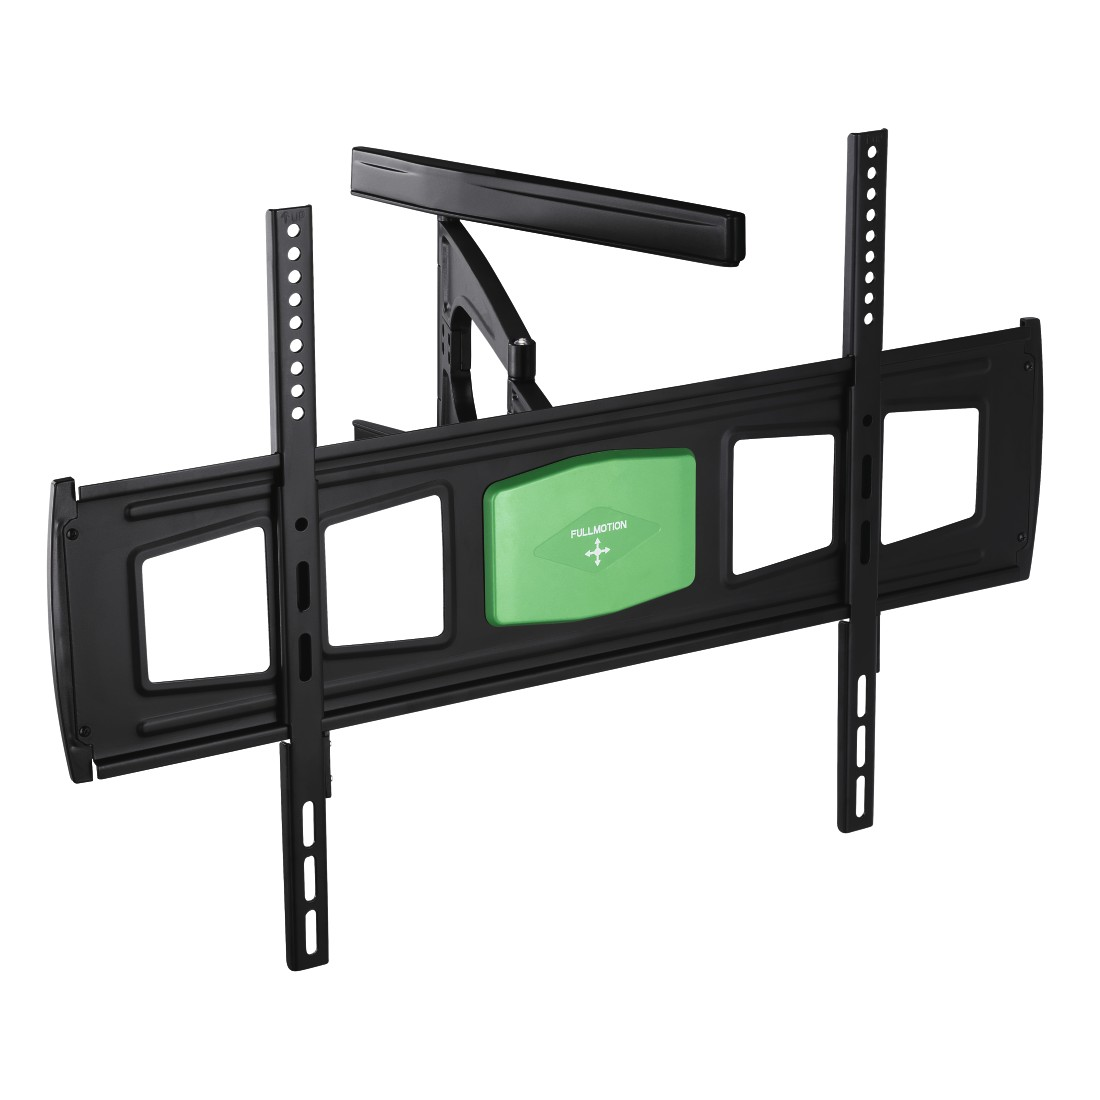 "dex9 High-Res Detail 9 - Hama, FULLMOTION TV Wall Bracket, 3 Stars, 165cm (65""), 2 Arm, black"